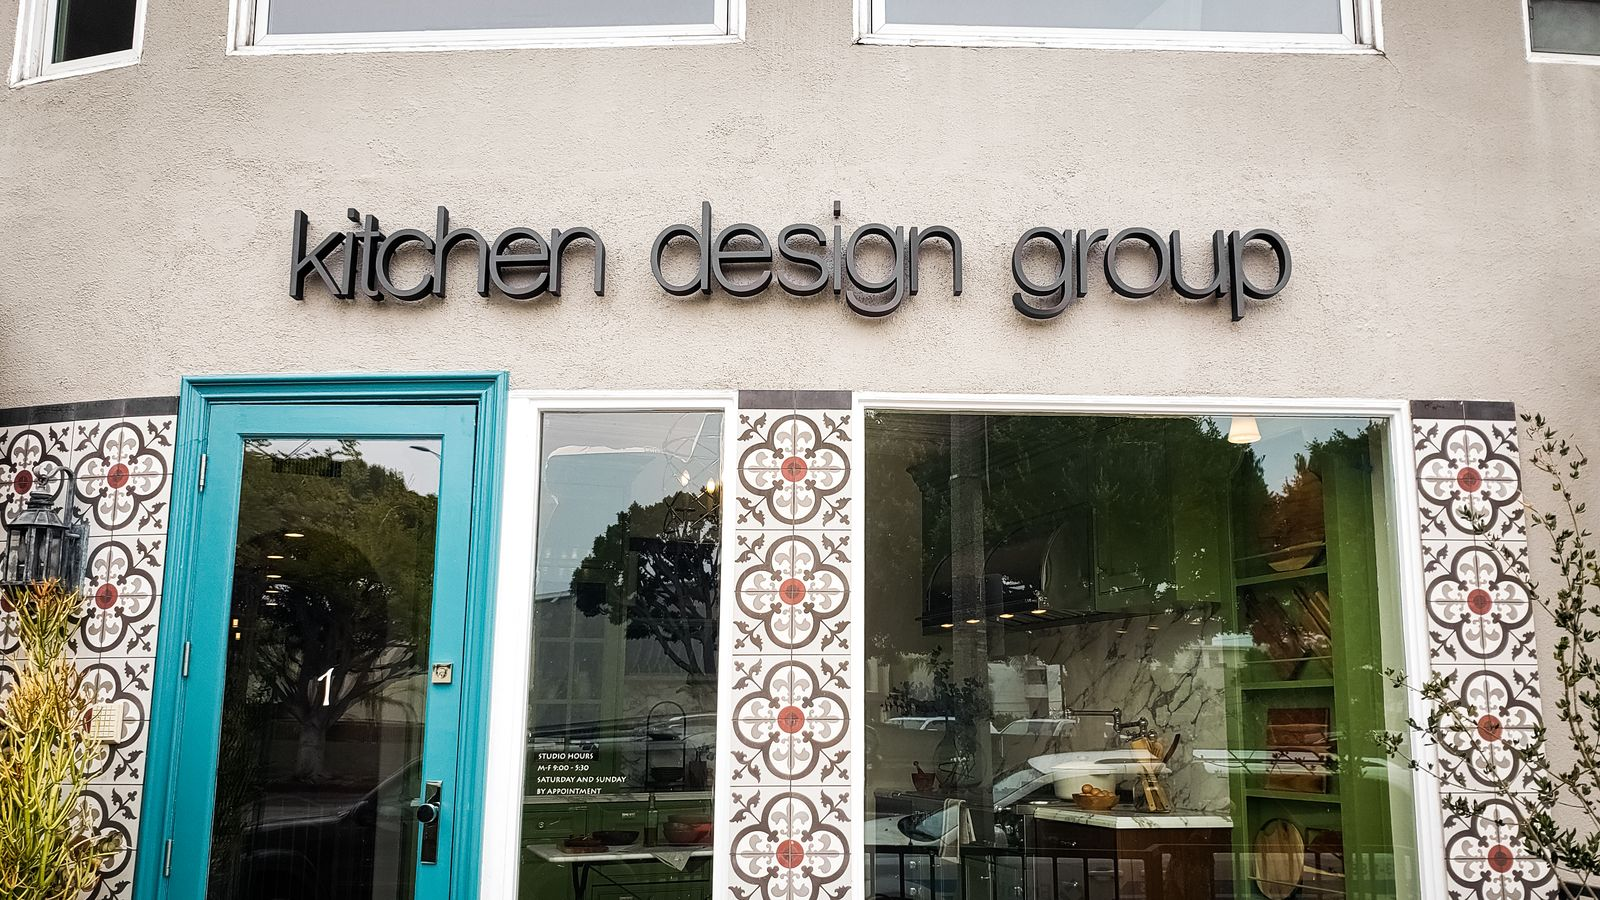 Kitchen Design Group 3d metal sign letters in black made of aluminum for storefront branding